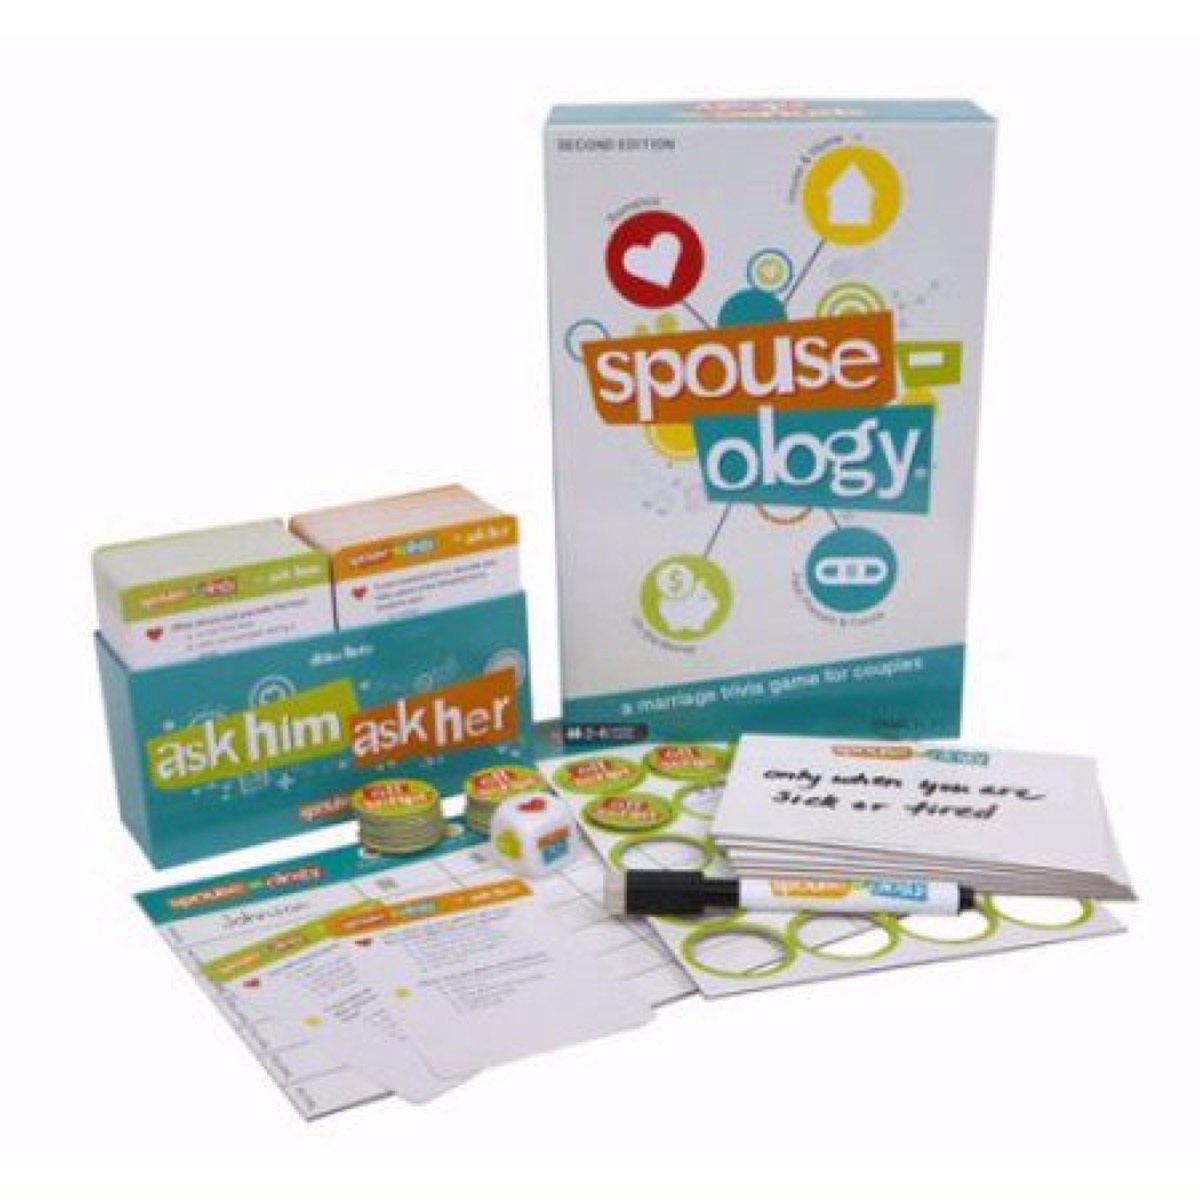 Spouse-ology board games for couples